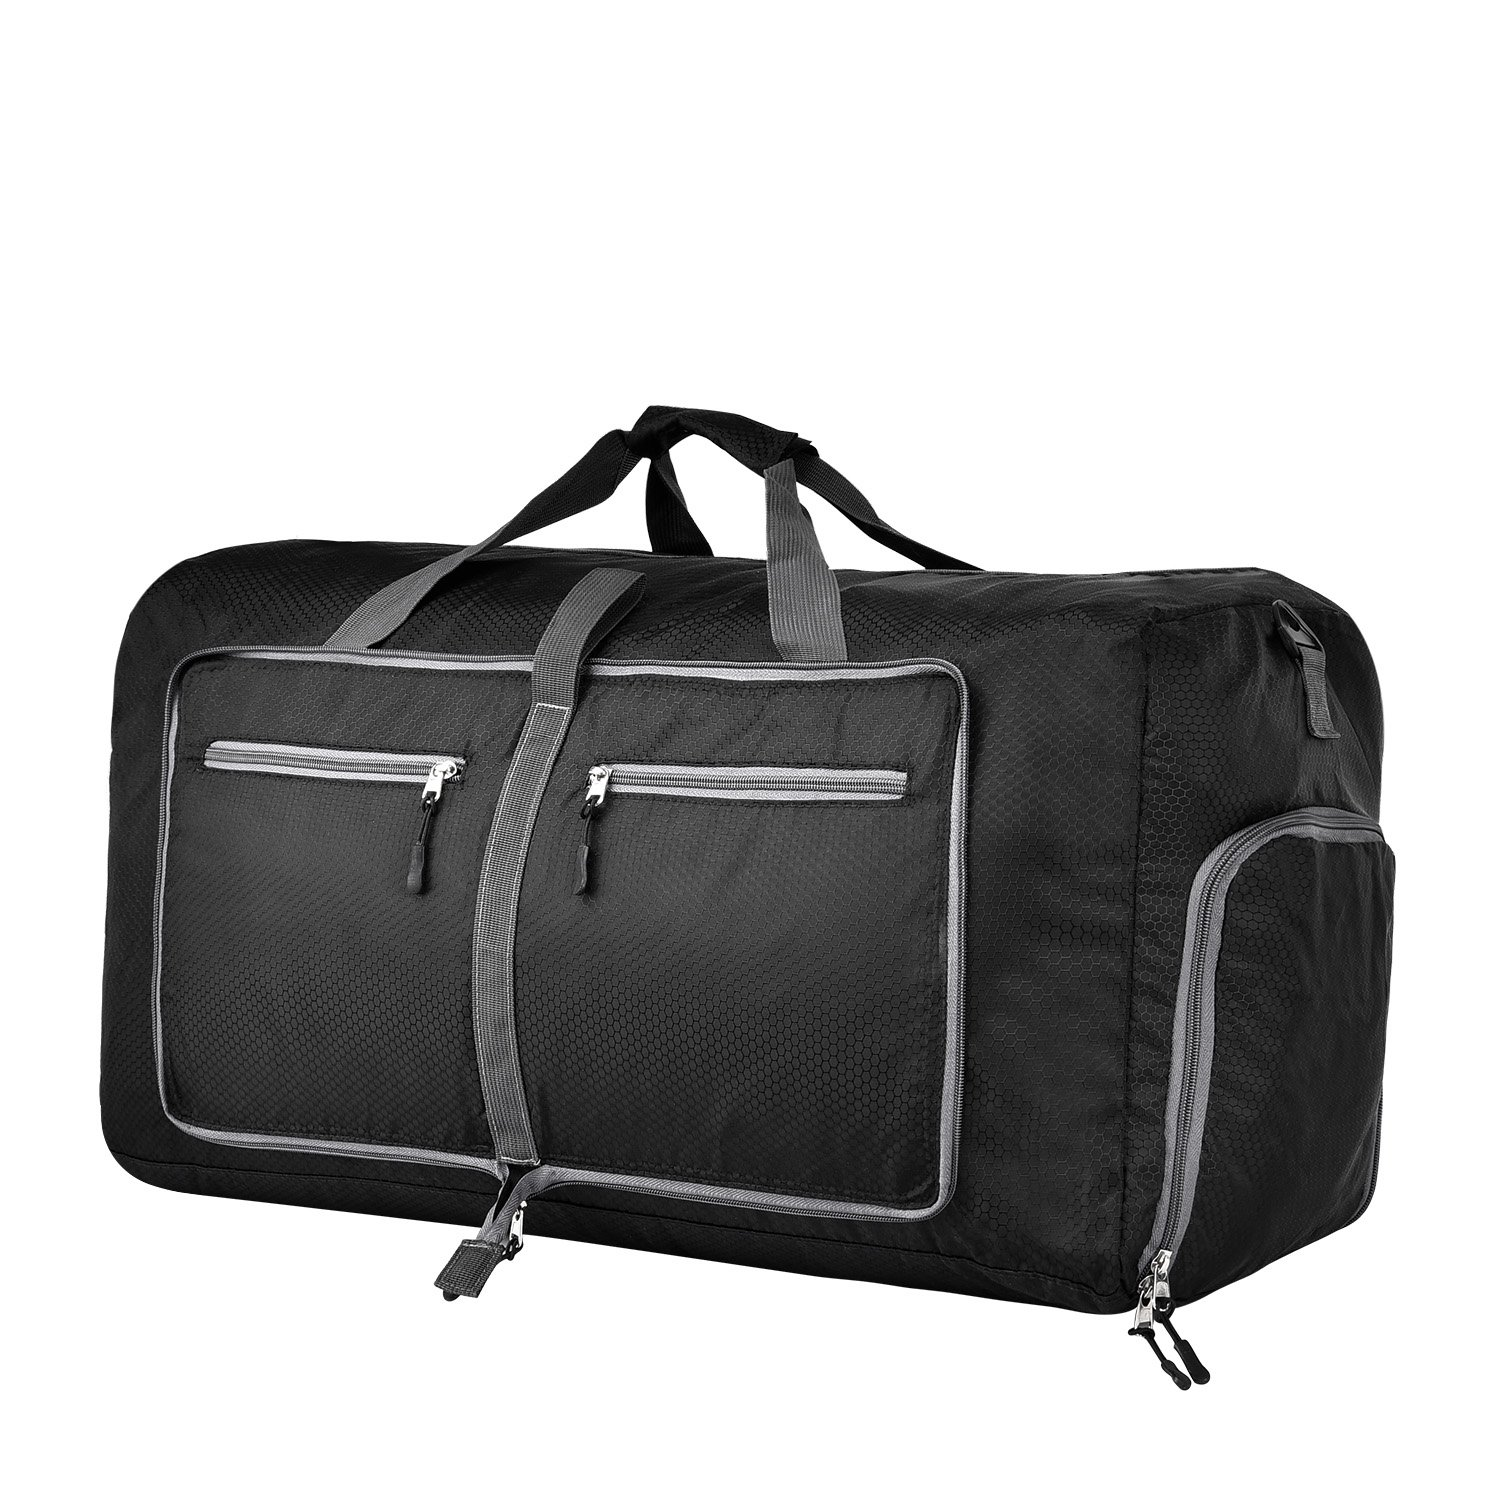 Atralife 70L Foldable Travel Duffel Bag for Luggage, Waterproof & Lightweight